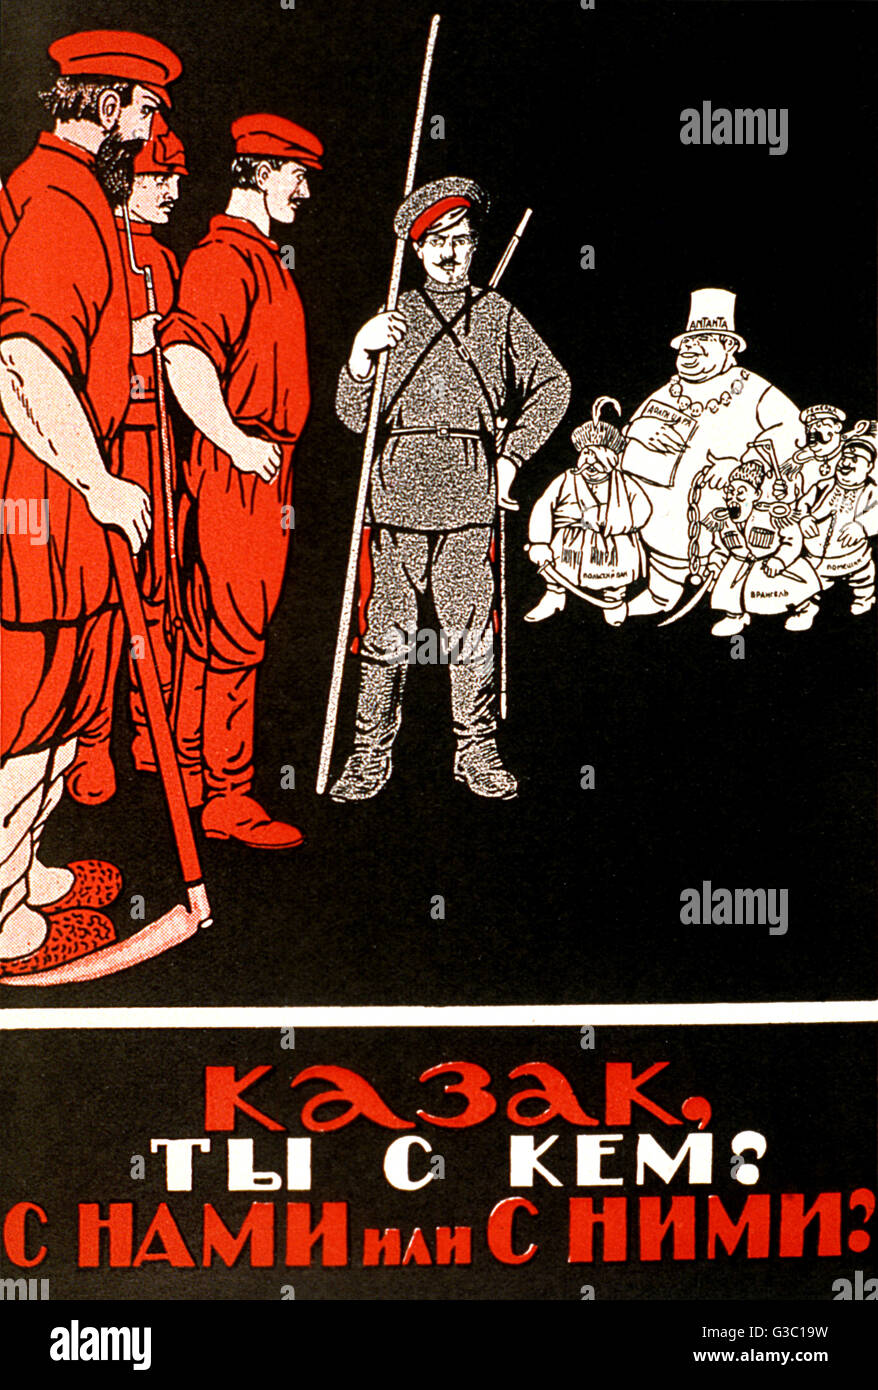 Russian revolutionary poster, asking a Cossack soldier whose side he is on, the heroic Reds or the decadent Whites. - Stock Image